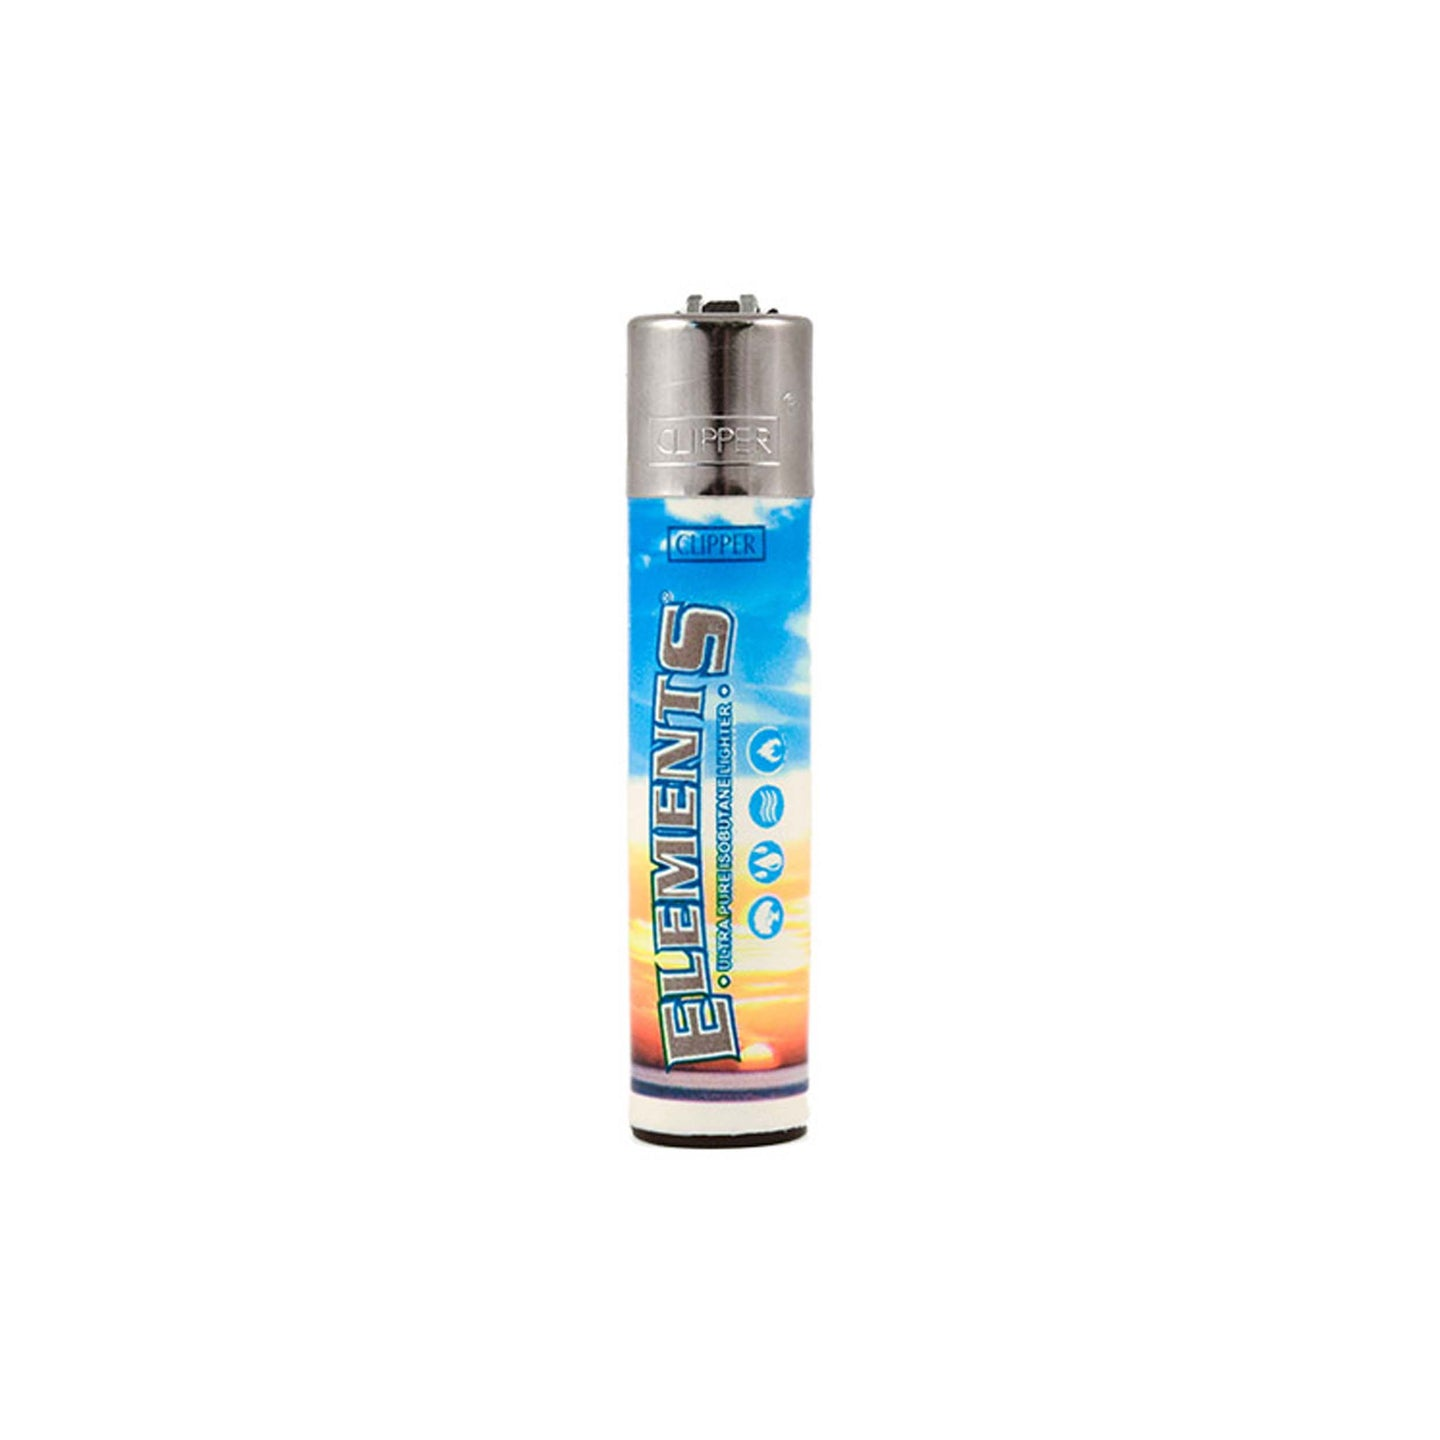 Elements Lighter Refillable